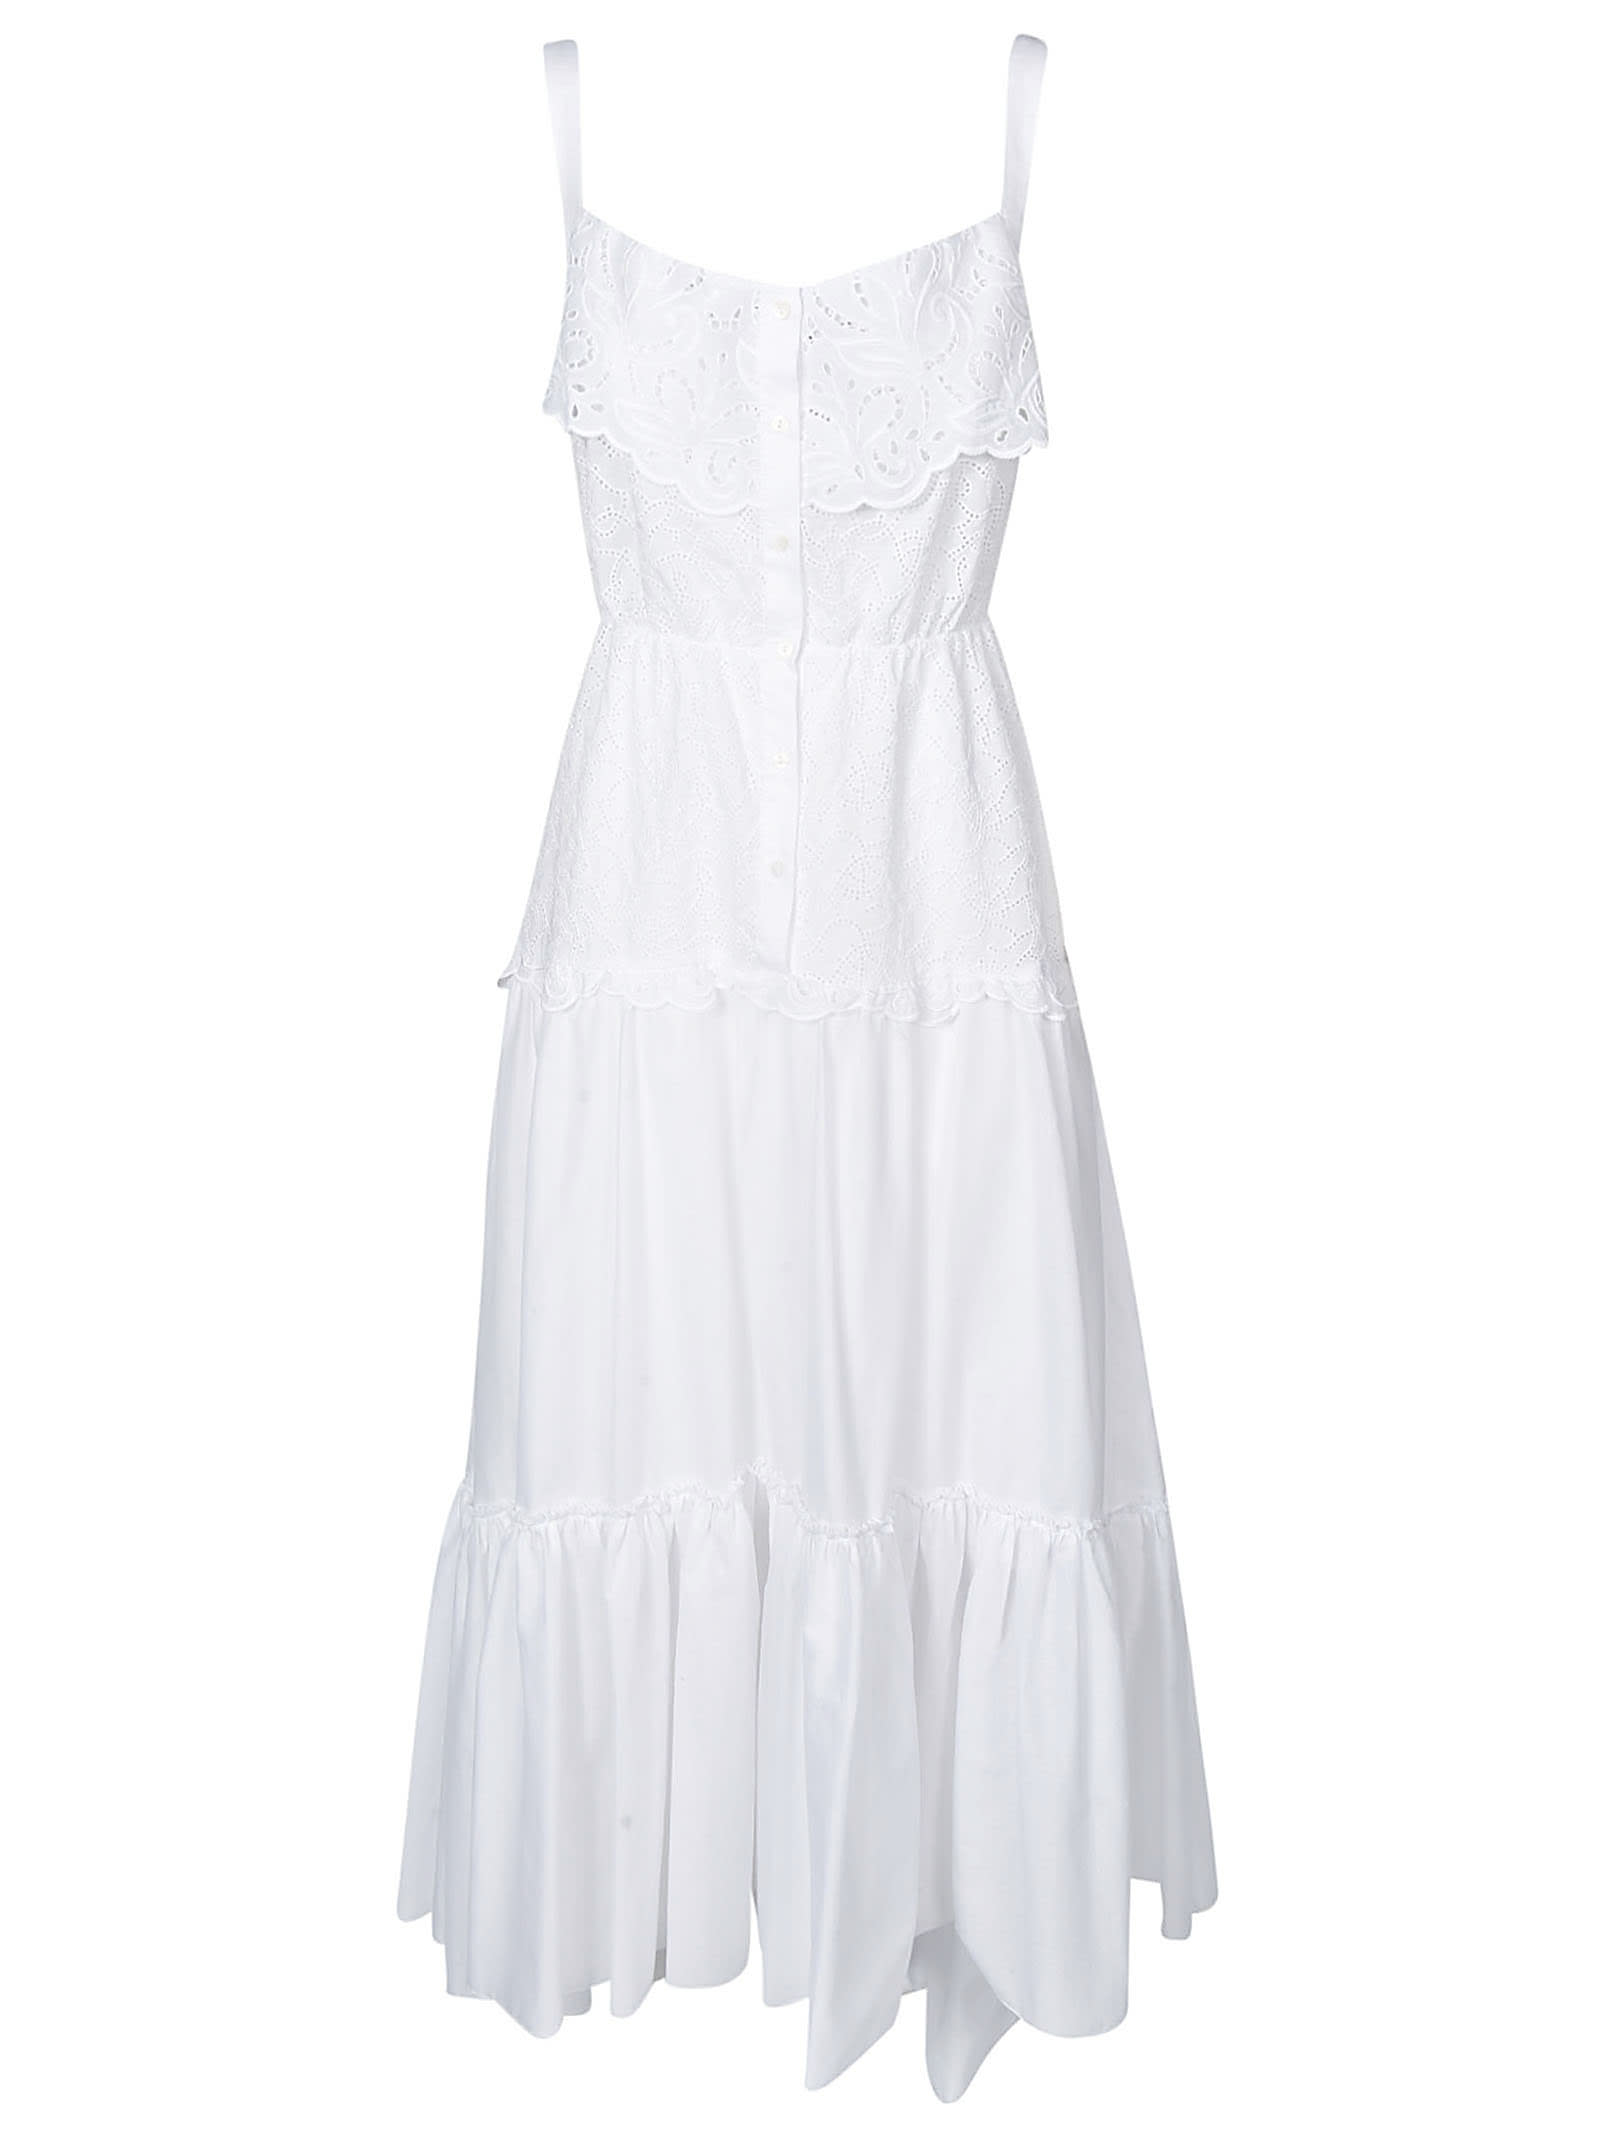 Buy Ermanno Scervino Sleeveless Long Laced Dress online, shop Ermanno Scervino with free shipping